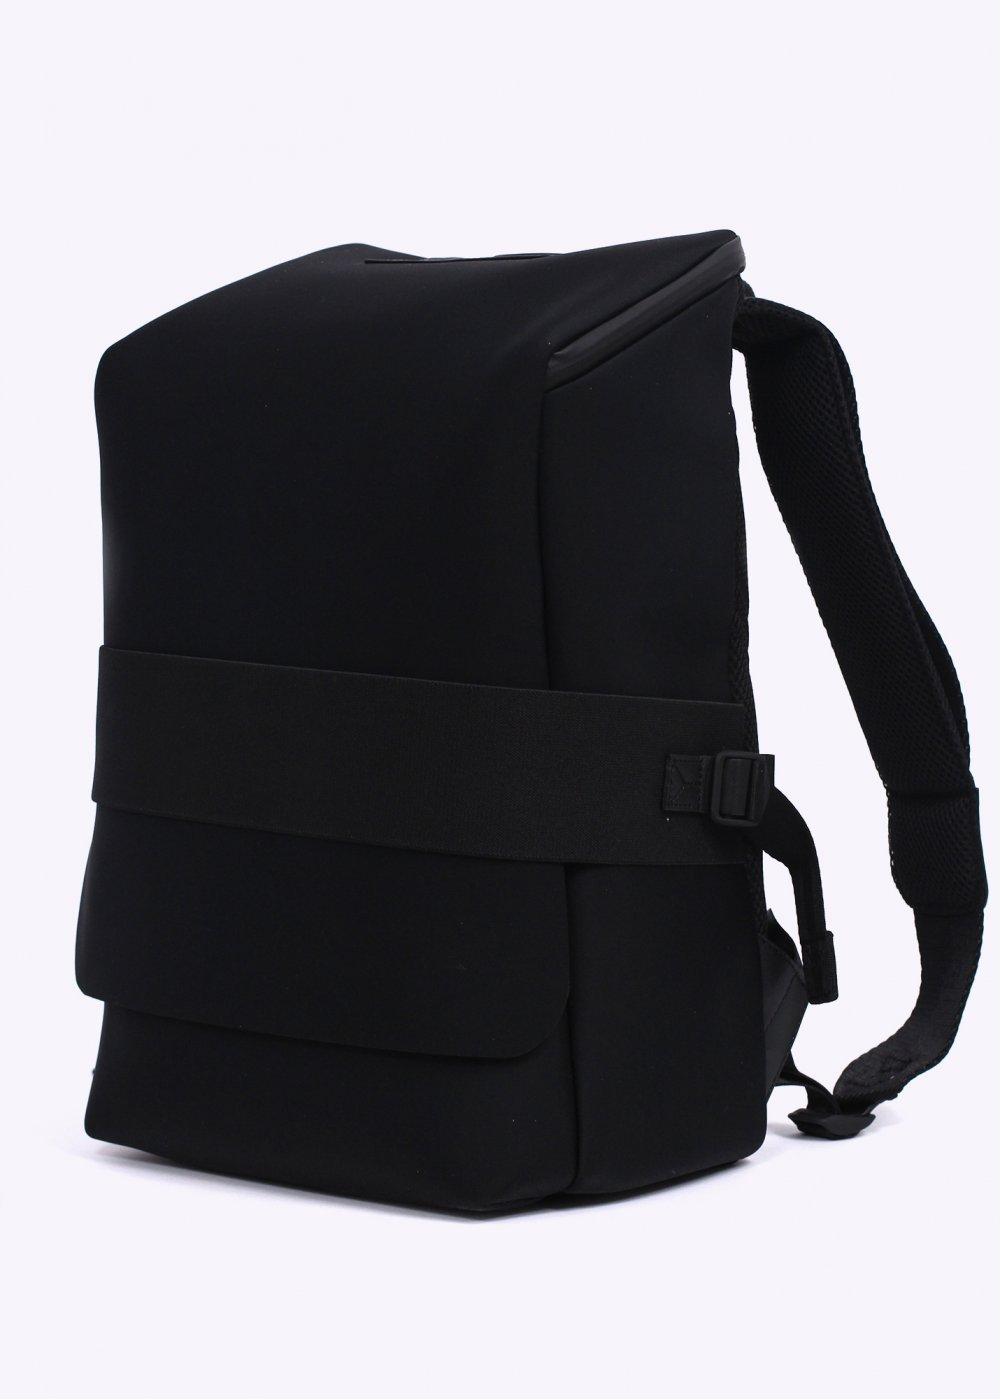 8dff825c5a adidas Y-3 DAY SMALL BACKPACK - BLACK